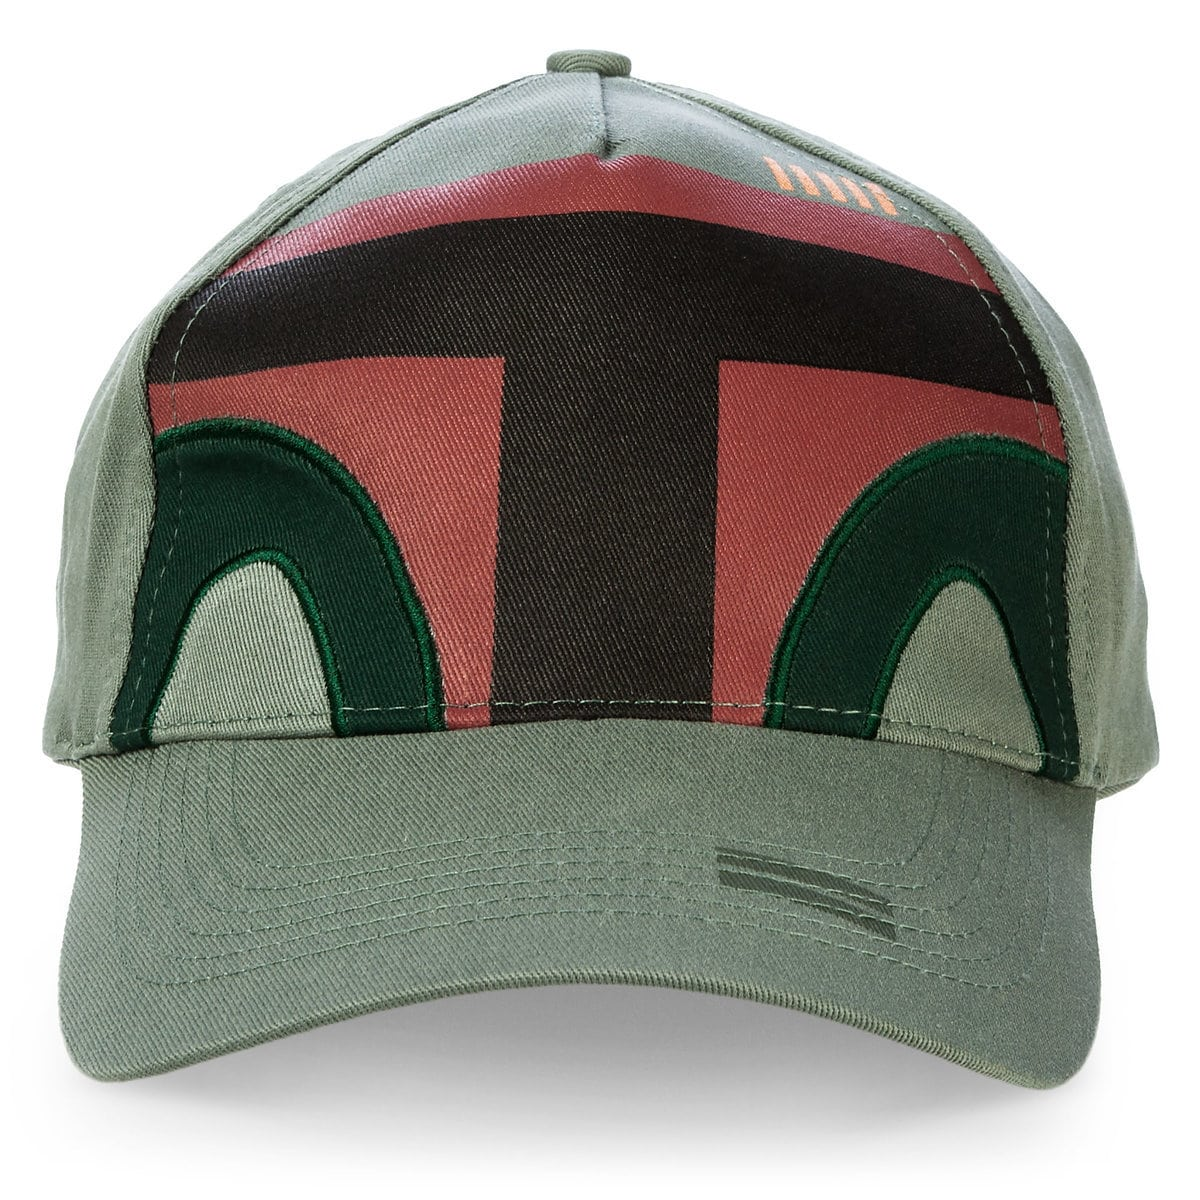 low priced 730c8 4d203 Product Image of Boba Fett Baseball Cap for Adults - Star Wars   1